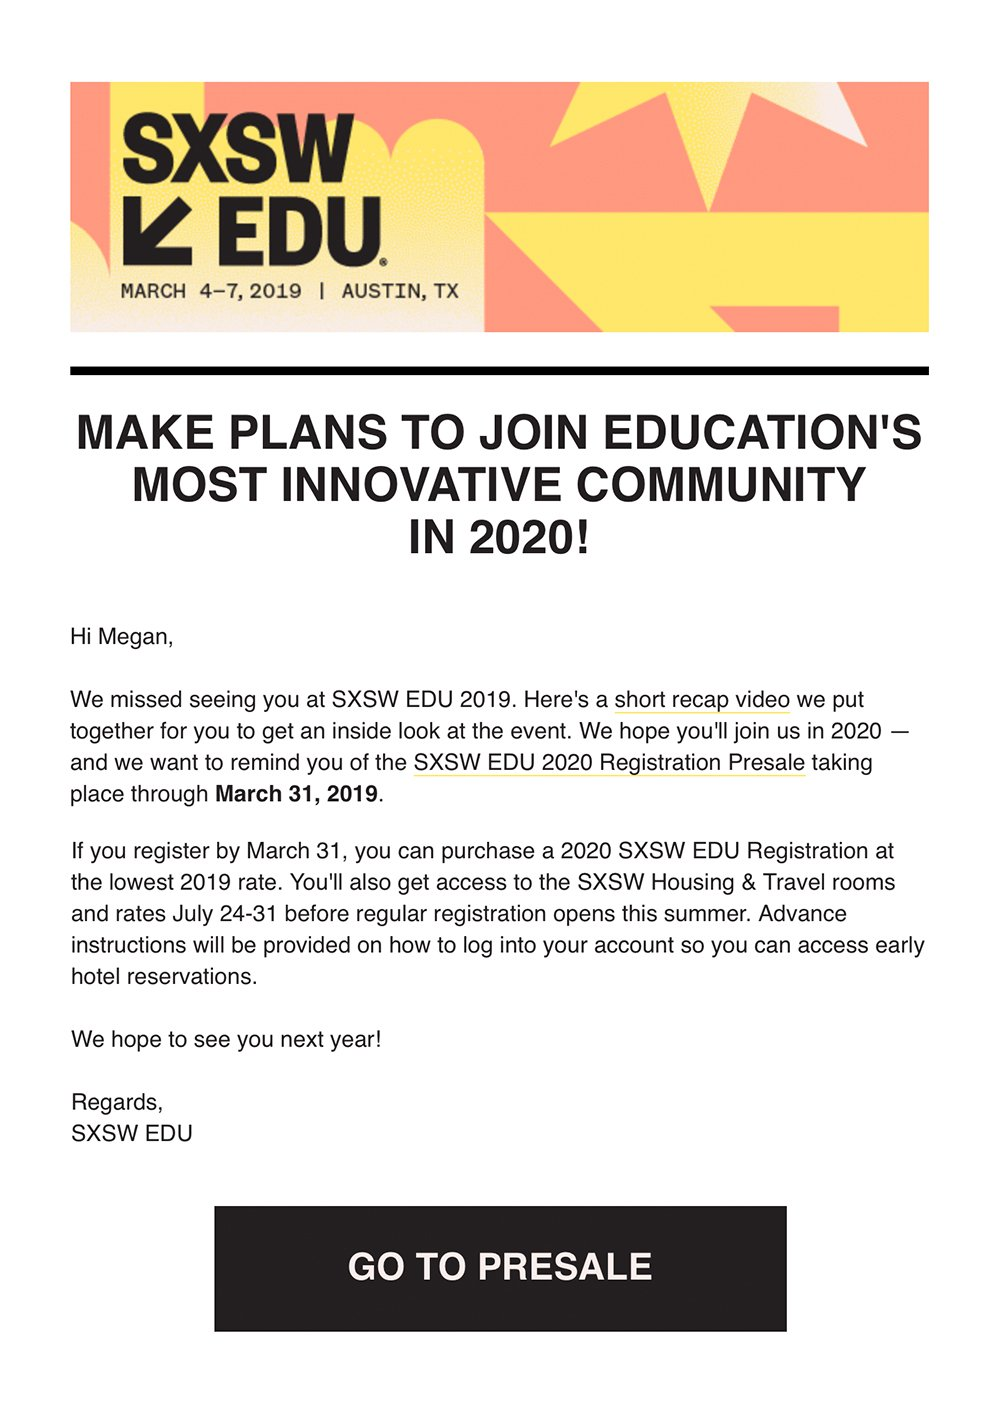 Event newsletter - SXSW EDU post-event email example